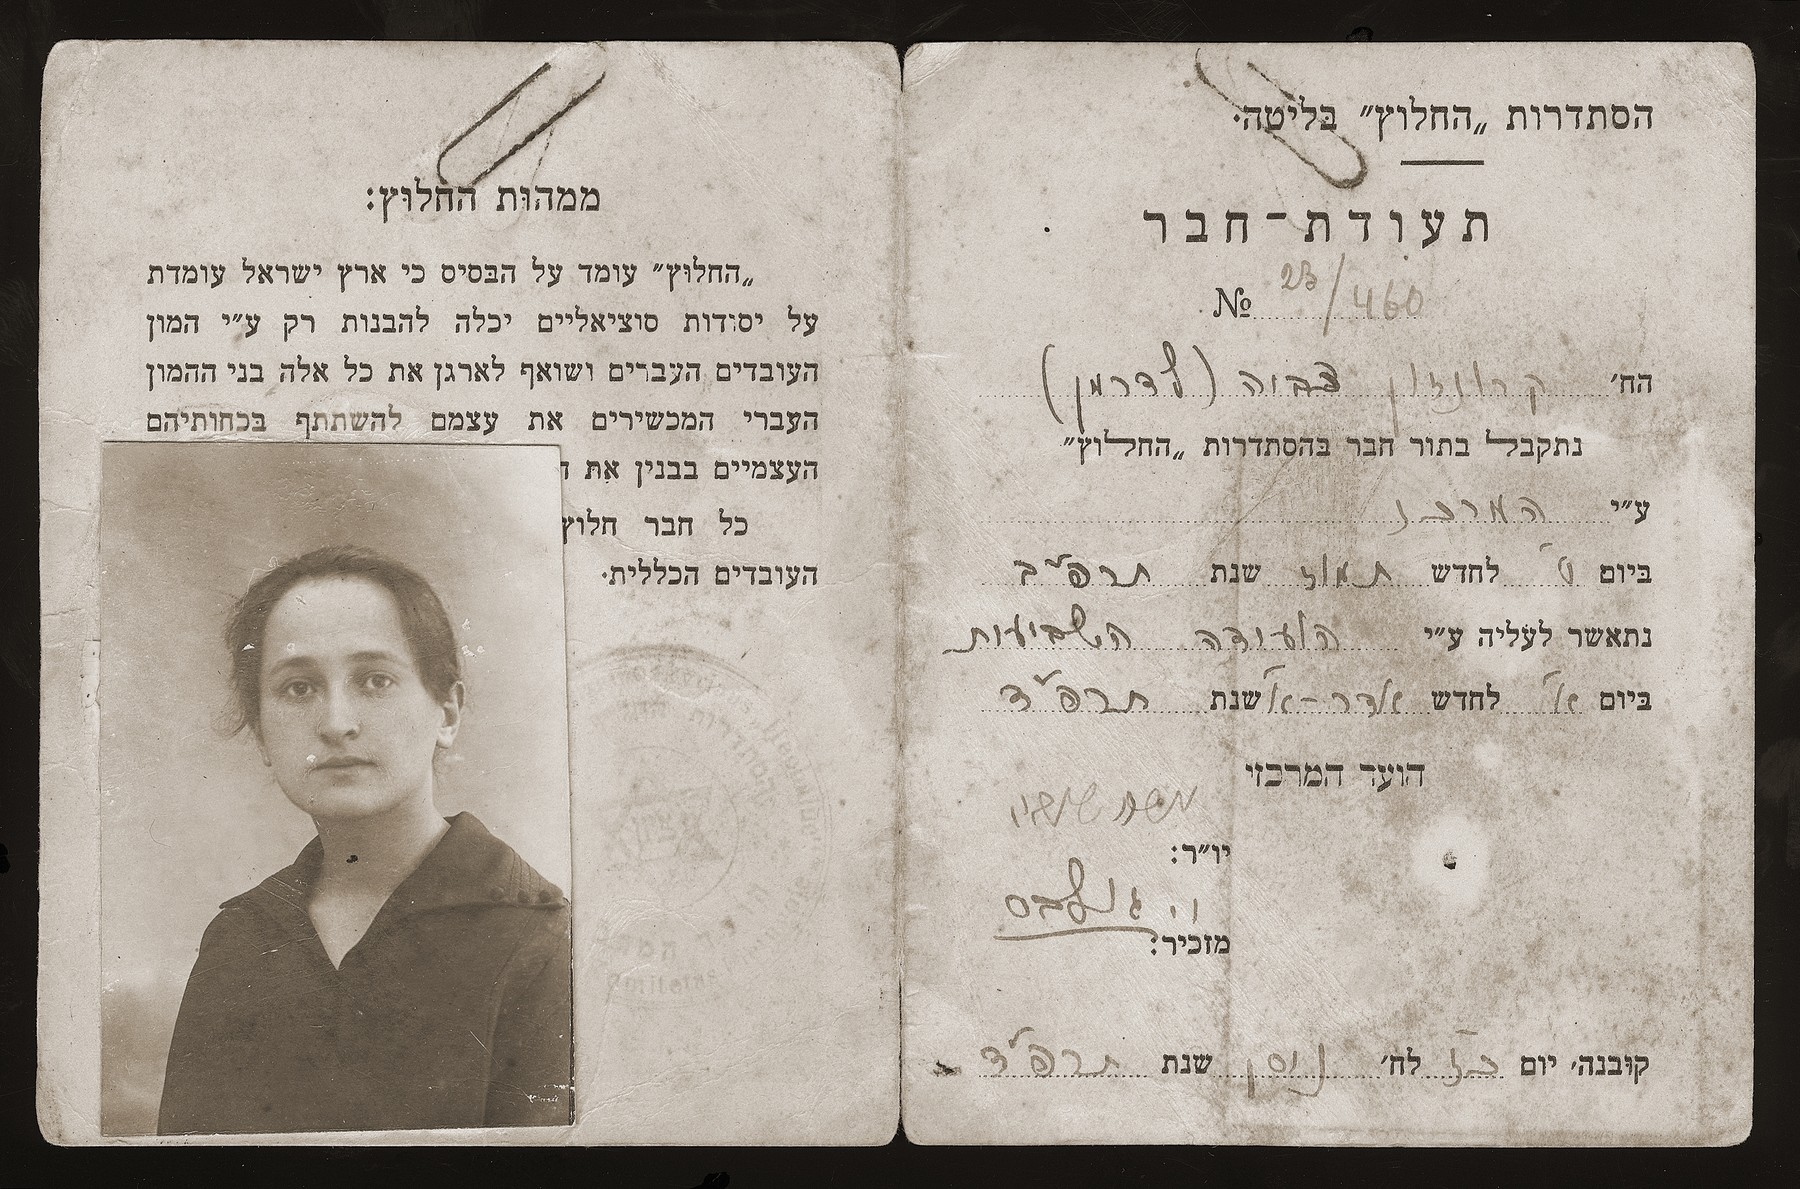 """Hehalutz"" membership card issued to Zvia Kronsohn (Lederman) in Kovno.   HeHalutz was an association of Jewish youth movements founded at the turn of the century to train its members in manual labor, usually agriculture,  in preparation for immigration to Palestine.    In Lithuania, HeHalutz was established after World War I, and membership ranged betwen 1,000 and 1,500 youth. Kibbutzim were established in several towns including Kovno, Shavli, Poniviez and Memel.  Originally these cooperative societies trained workers in carpentry, tailoring and other crafts.  Later, the focus shifted to primarily agricultural work."